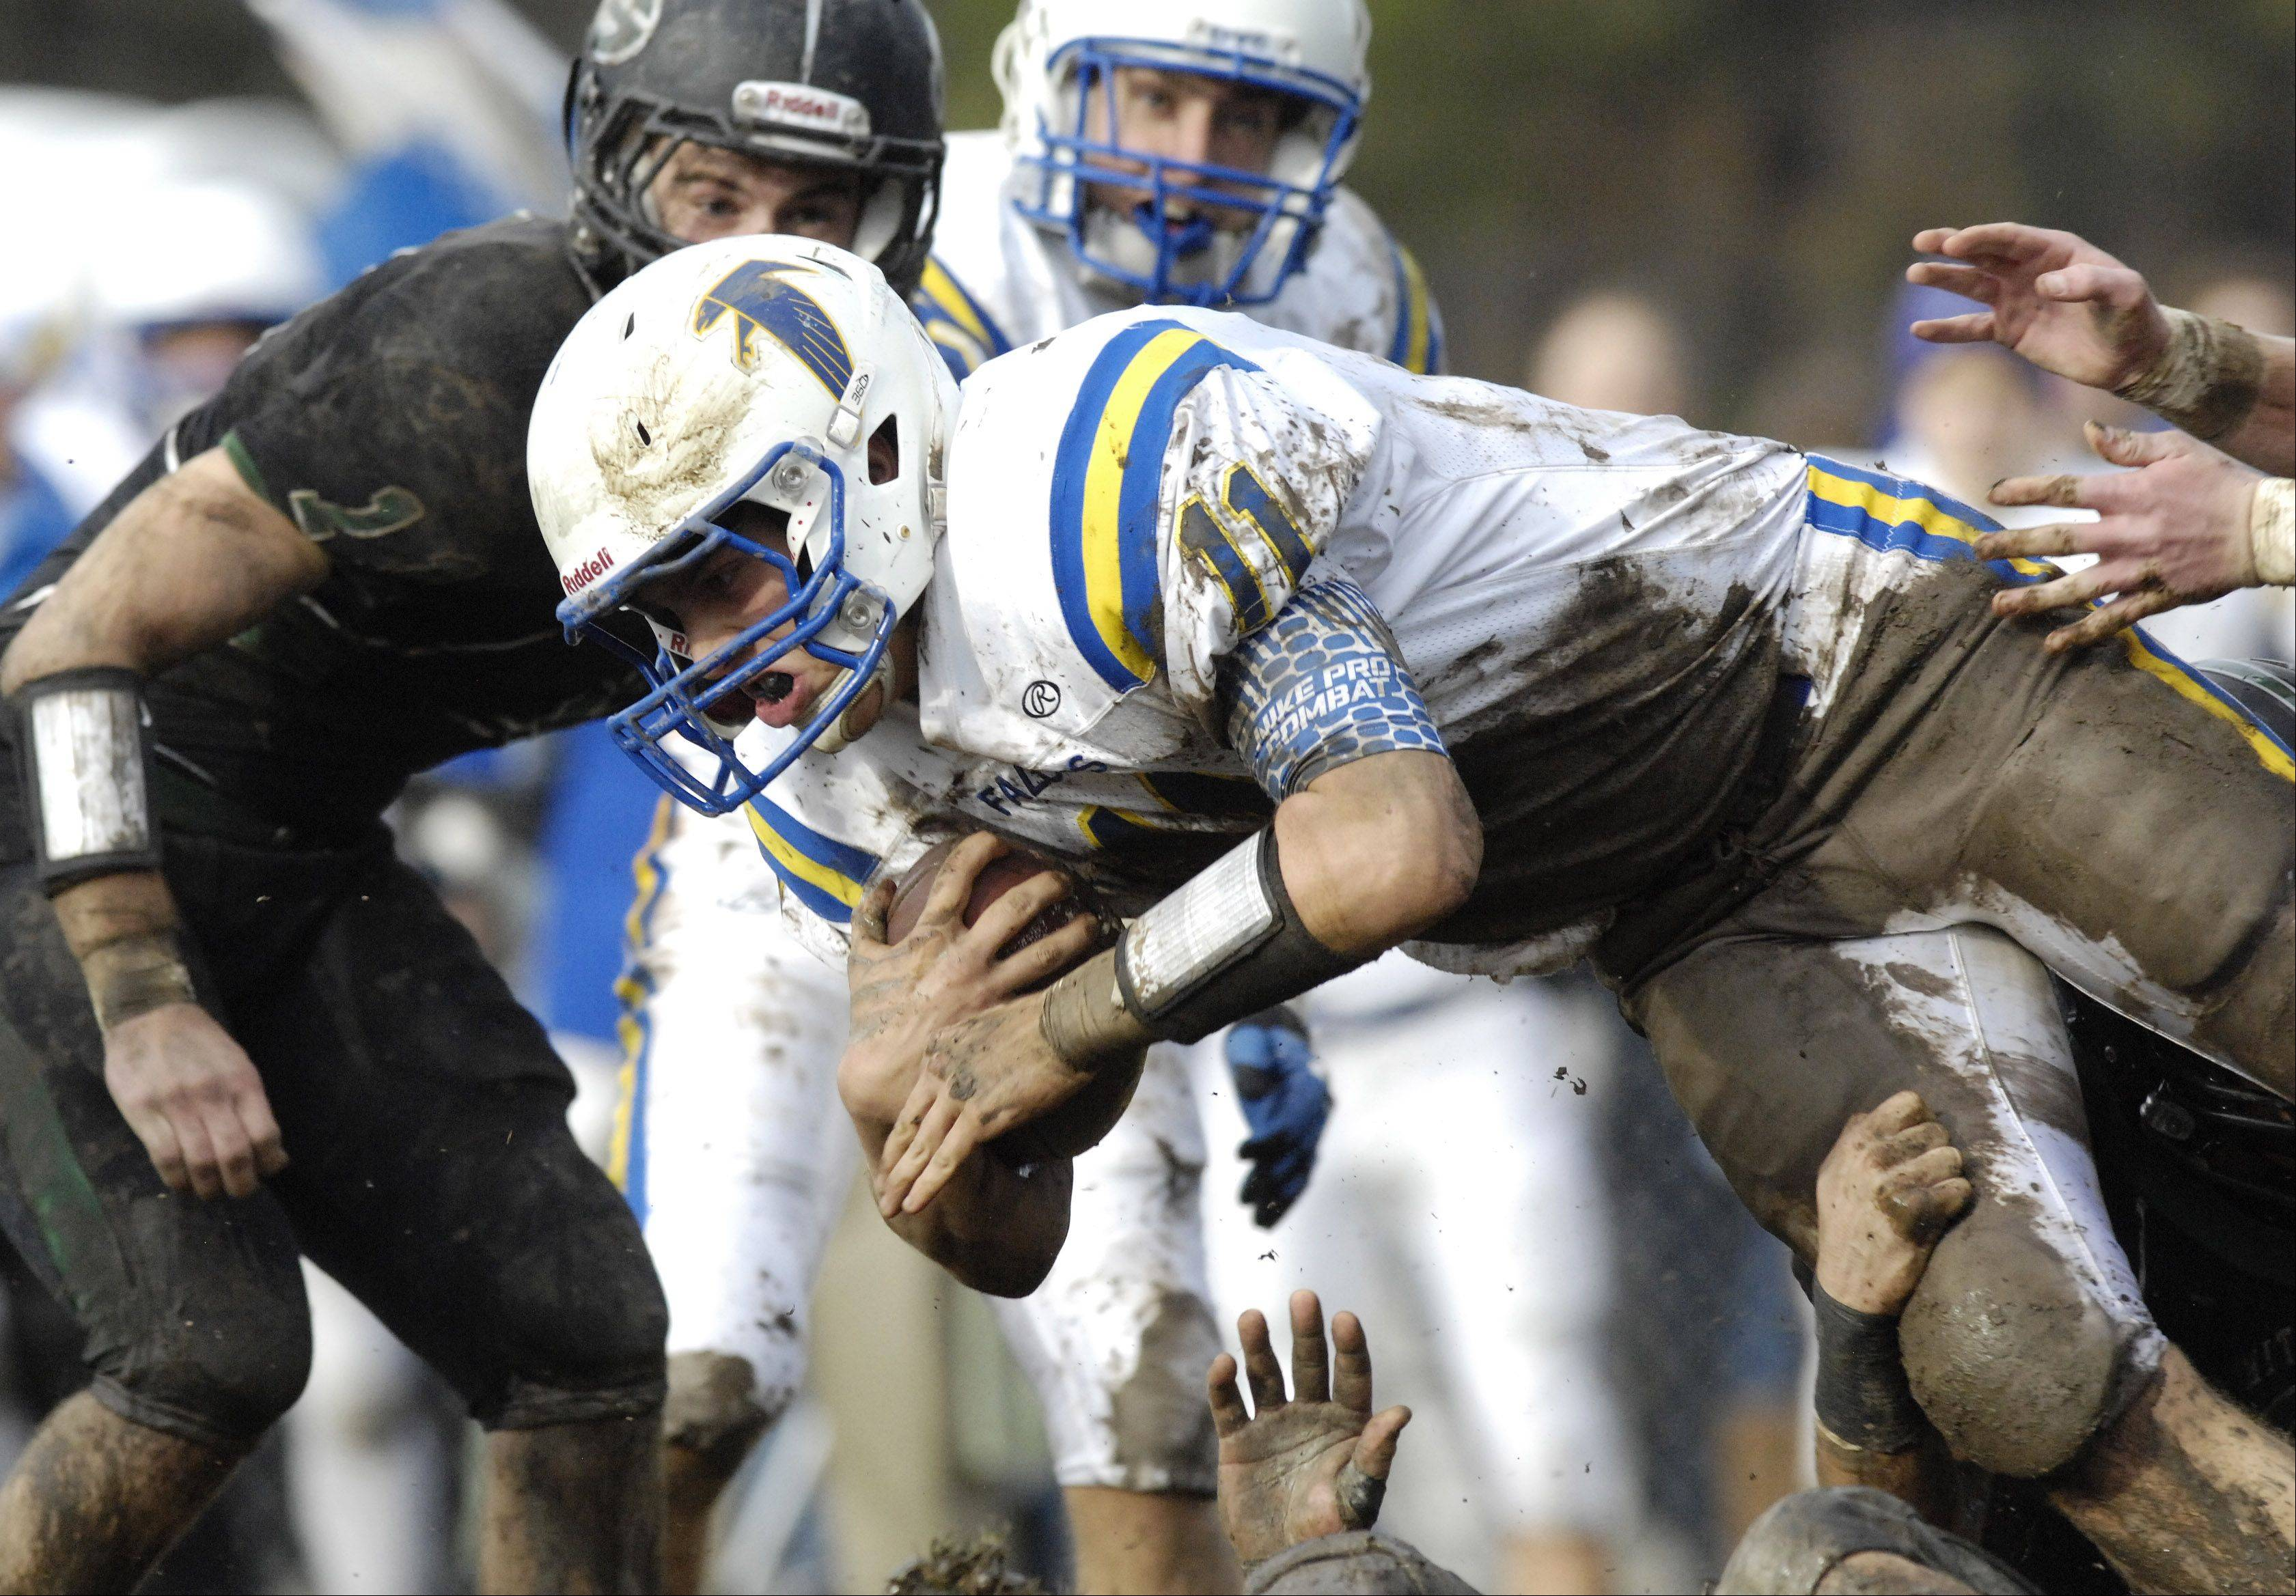 Wheaton North quarterback John Peltz dives for extra yardage during Saturday's game against Glenbard West.